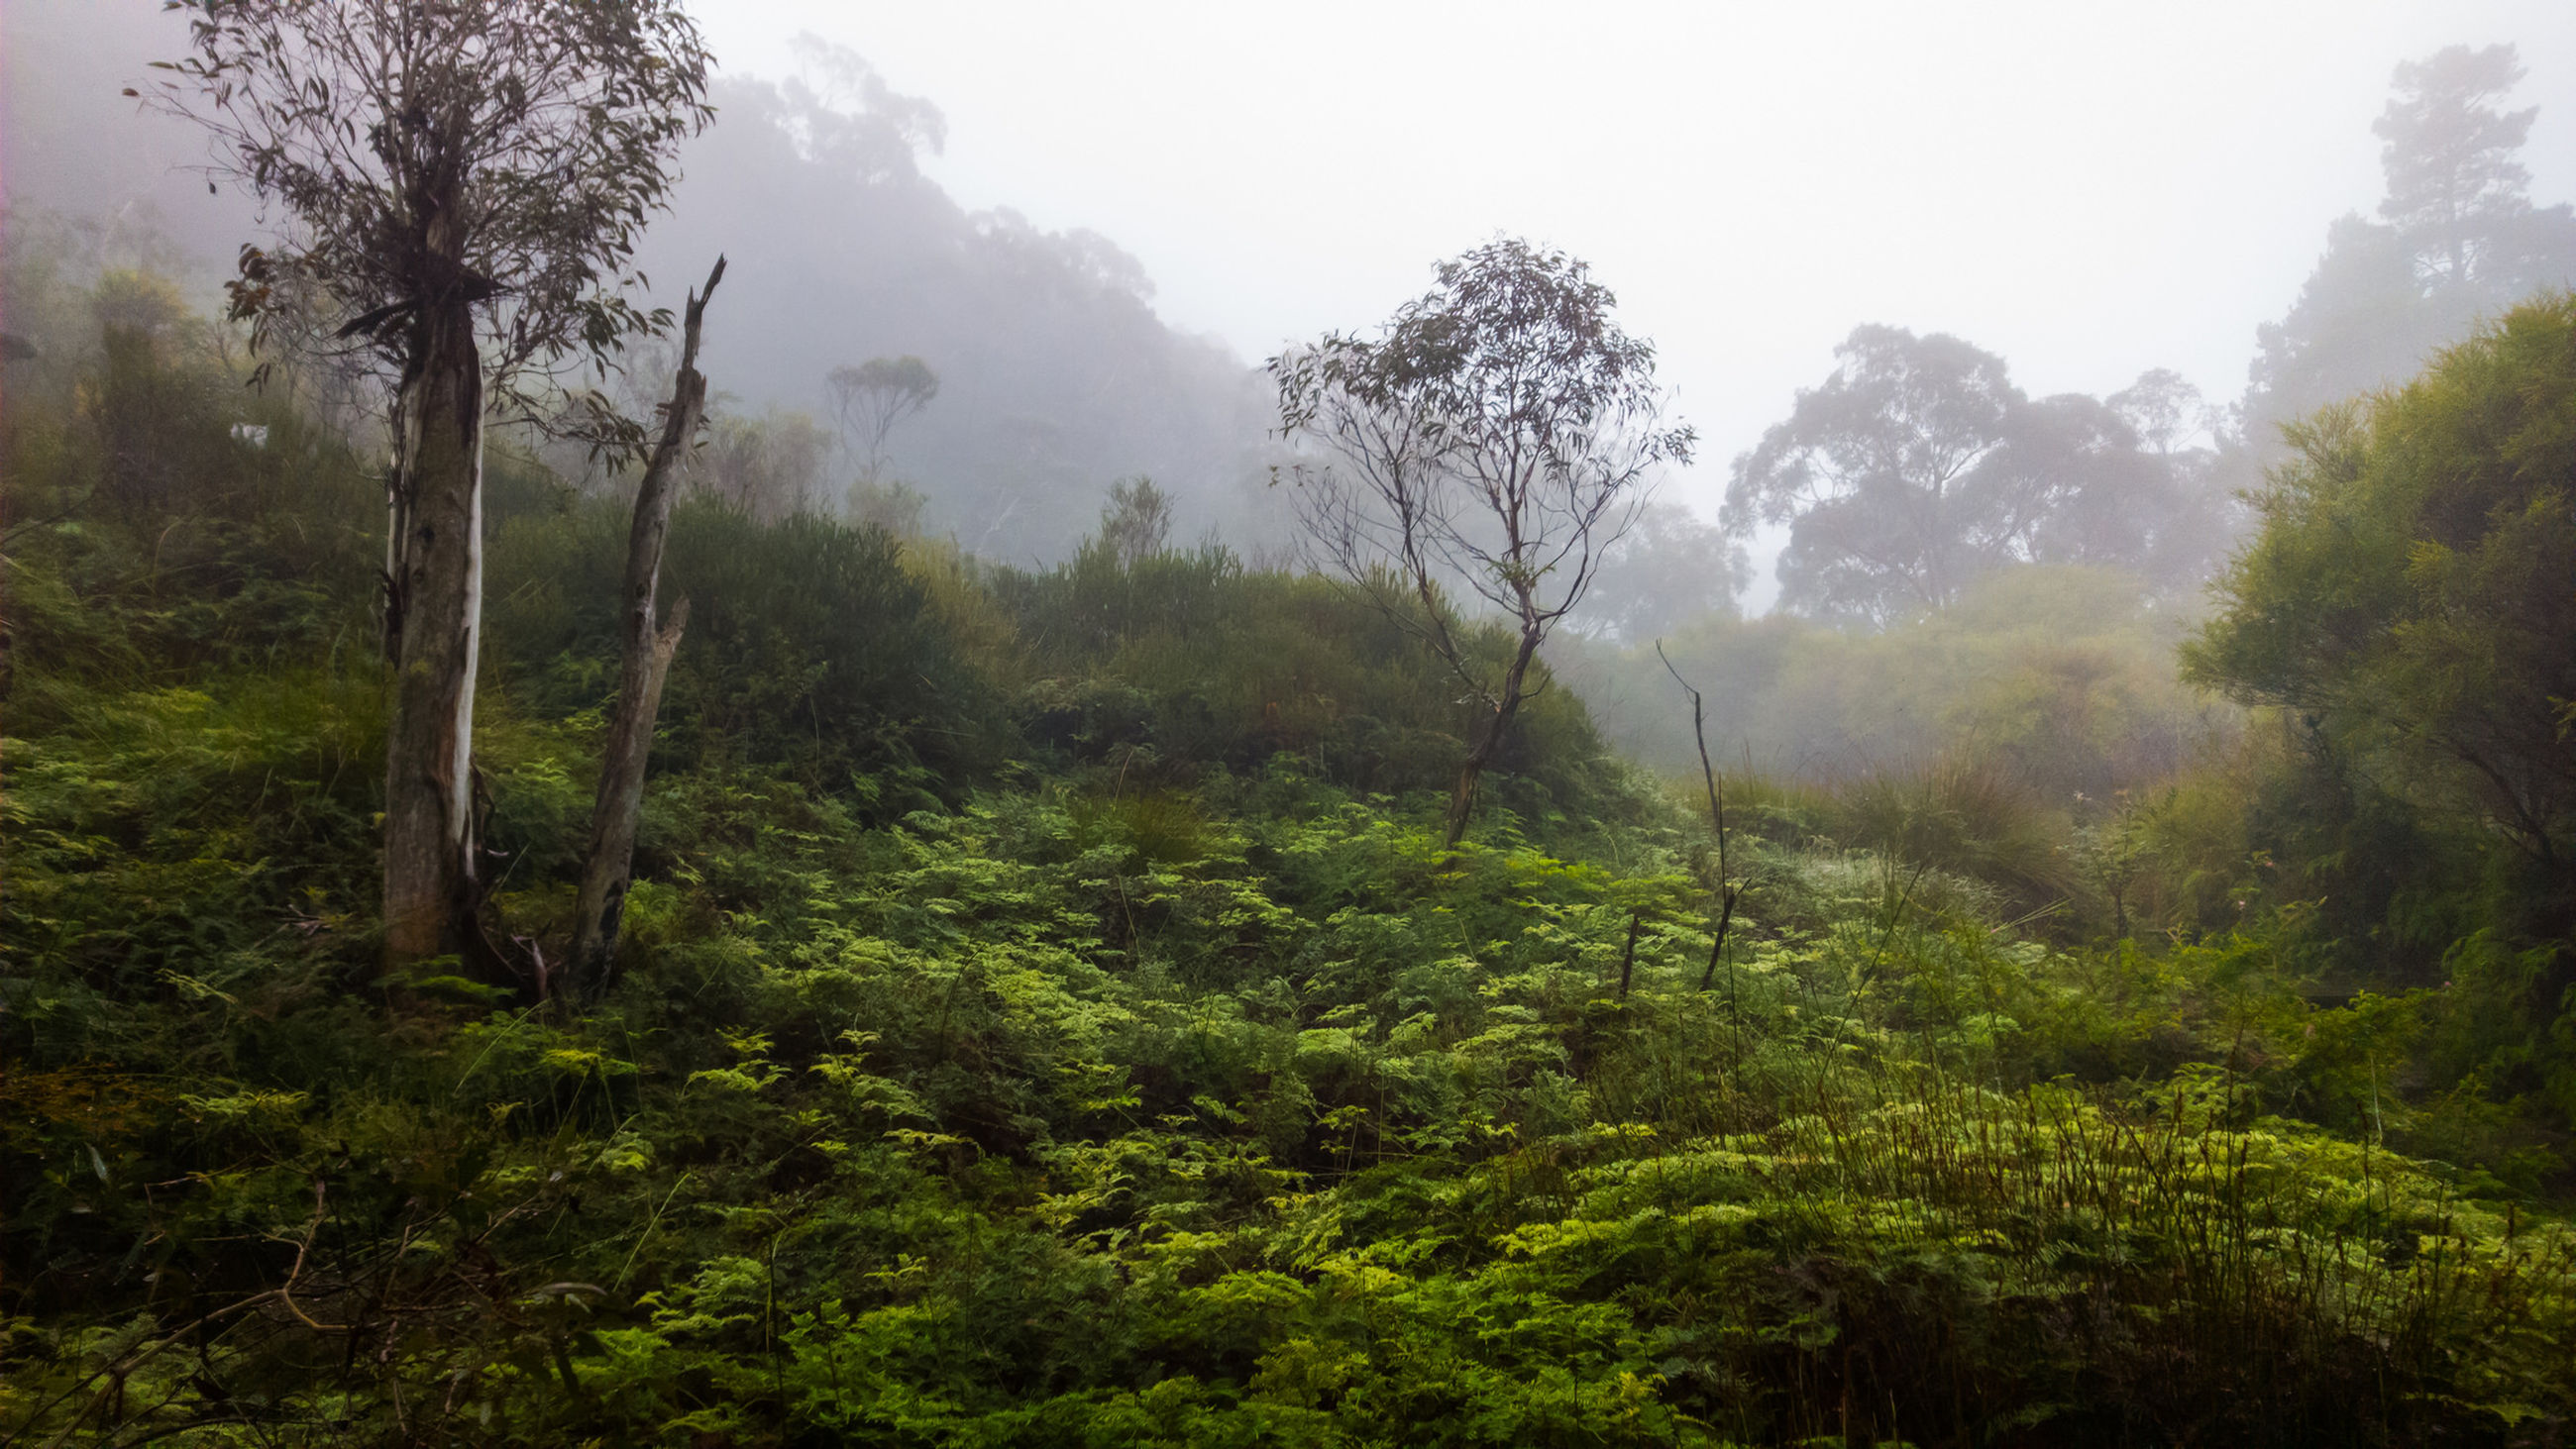 Scenic view of forest against clear sky during foggy weather